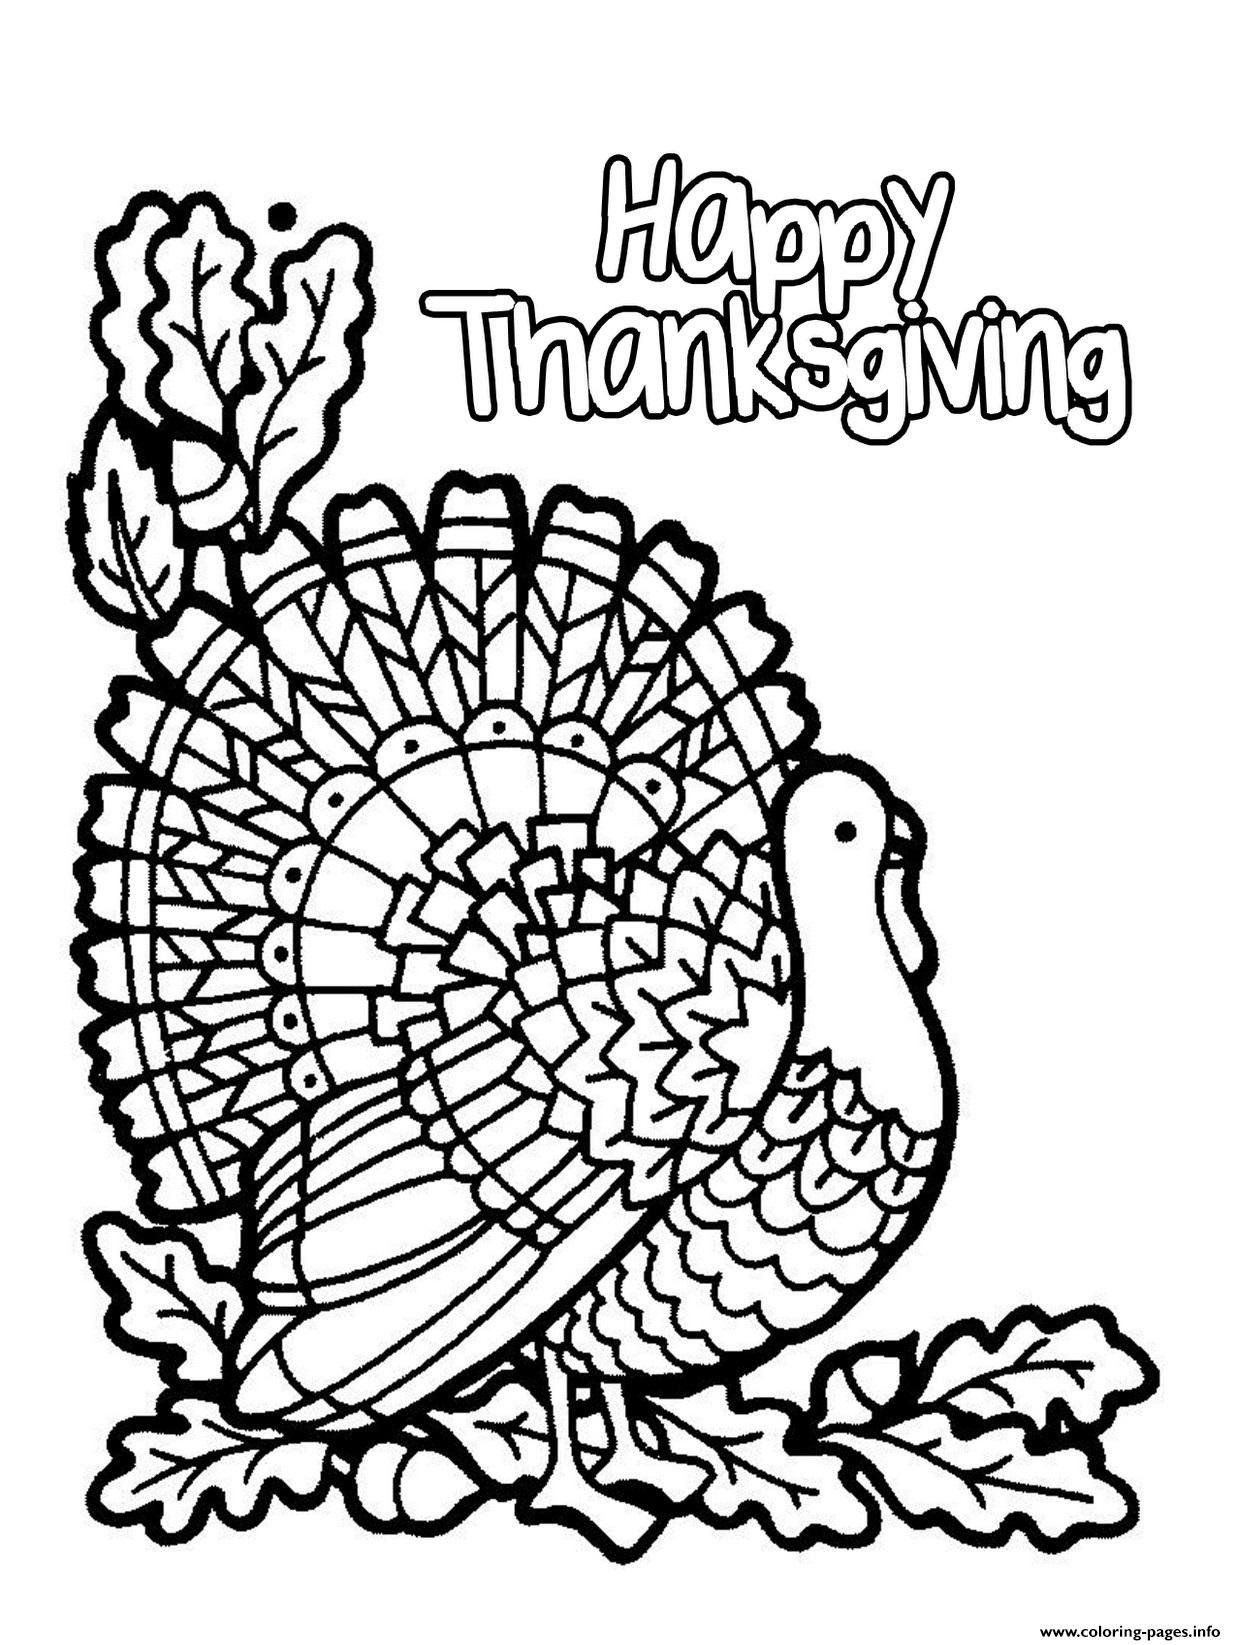 Happy Thanksgiving Coloring Pages Inspirational Coloring Pages Printable Coloring Turkey Coloring Pages Thanksgiving Coloring Book Thanksgiving Coloring Pages [ 1645 x 1236 Pixel ]